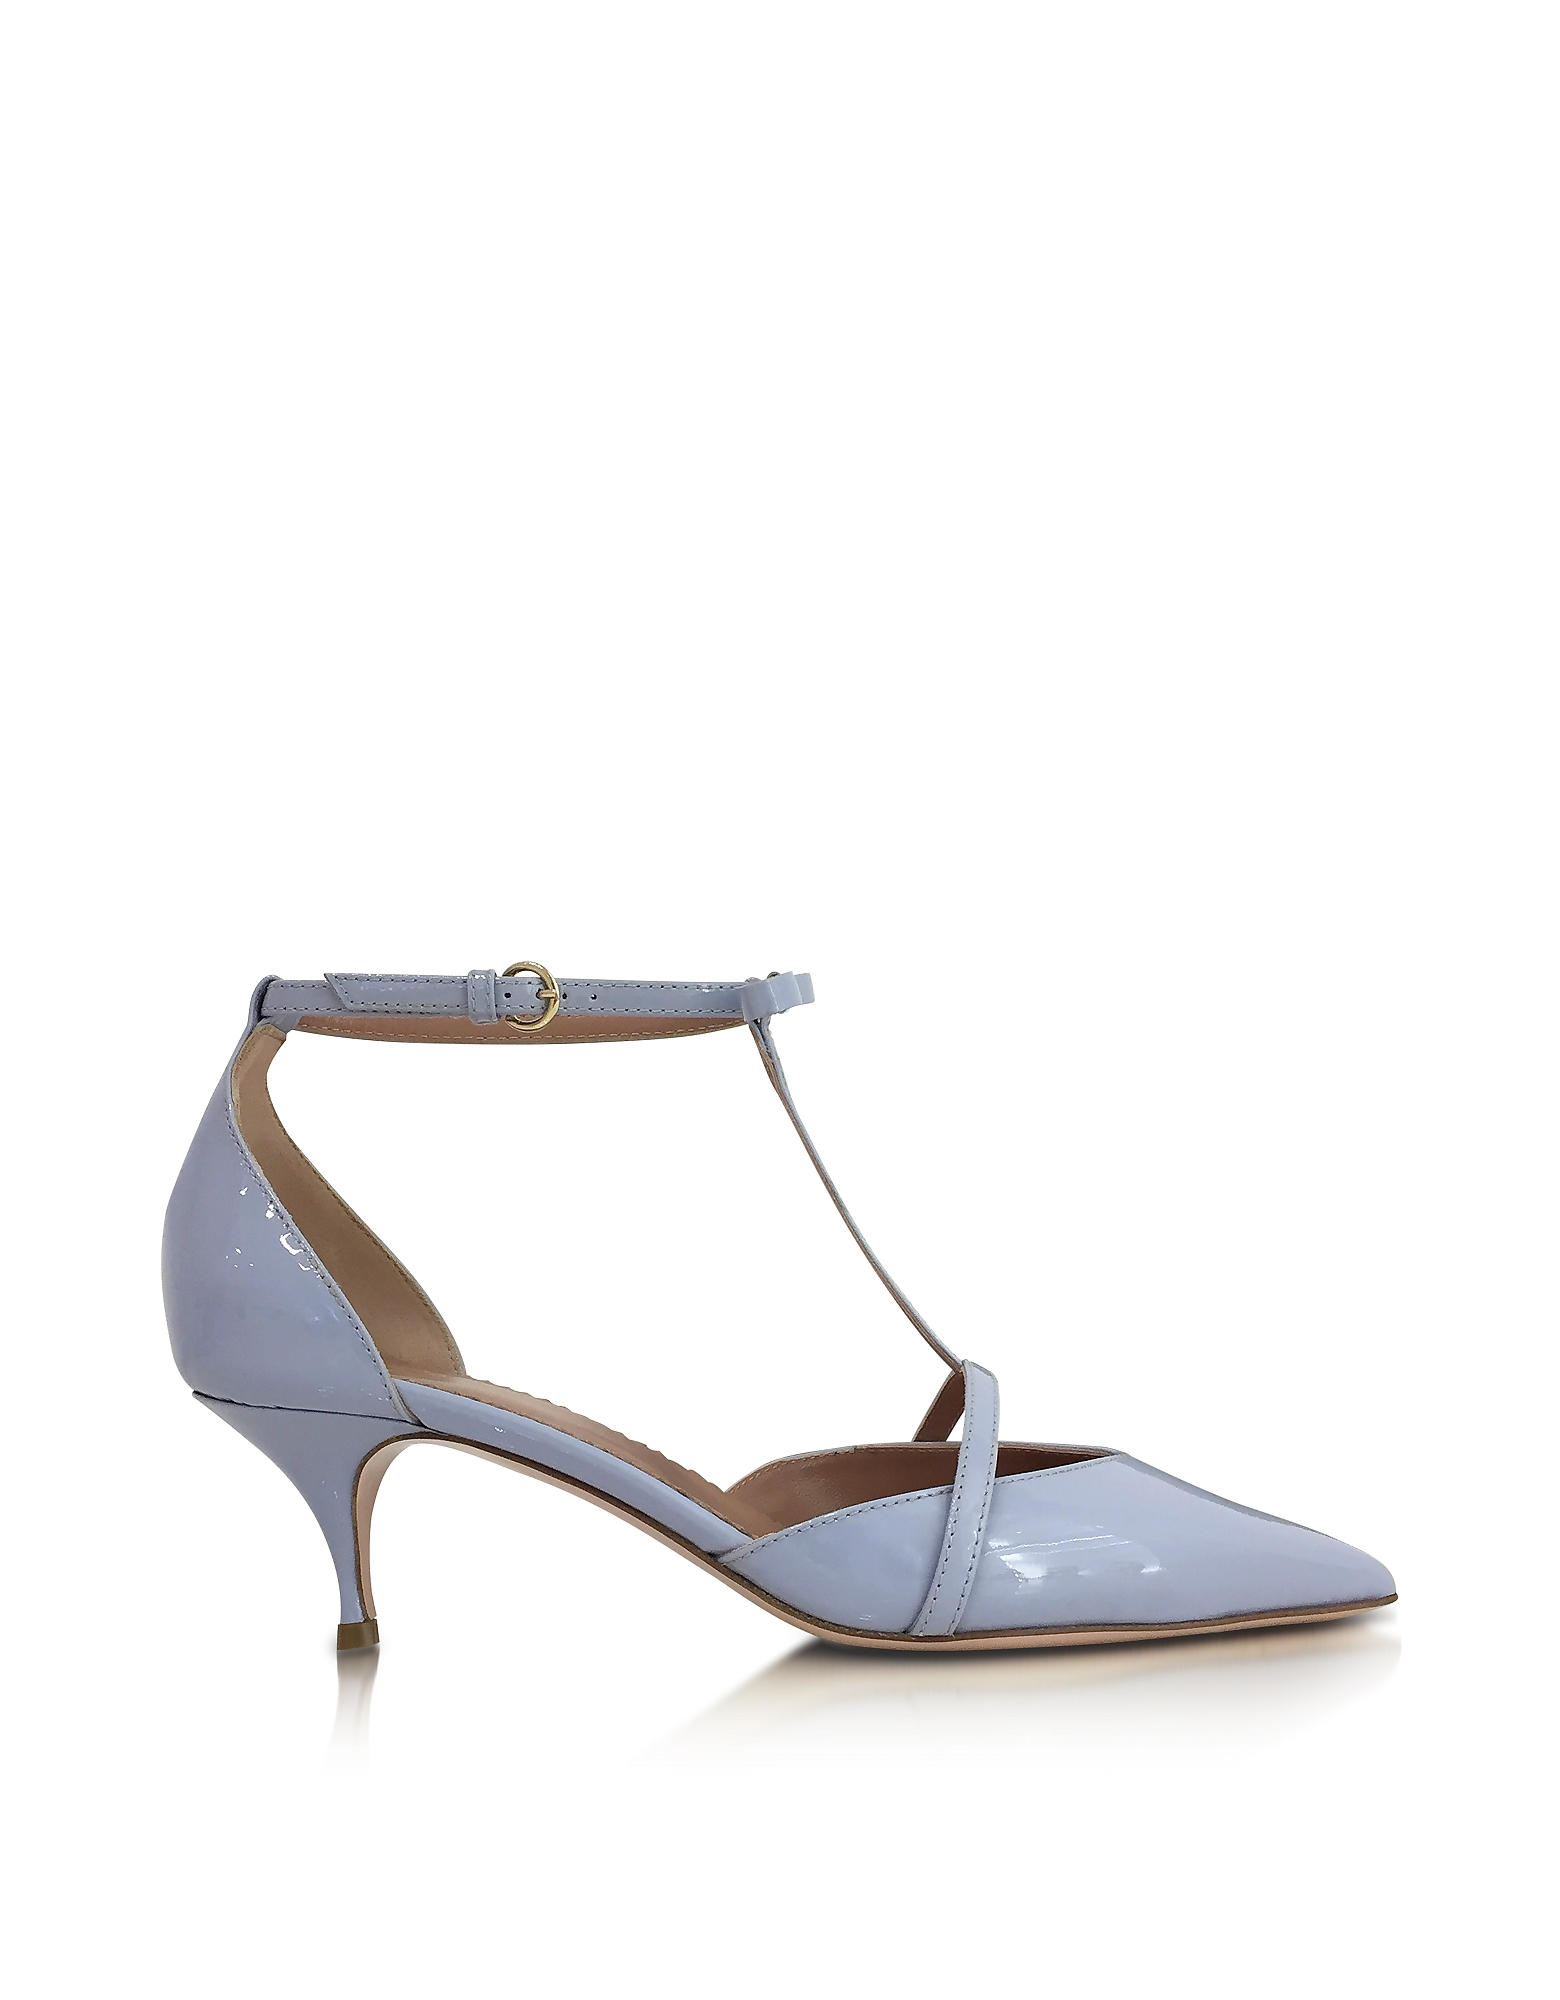 RED Valentino Shoes, Ortensia Blue Patent Leather Mid Heel Pumps